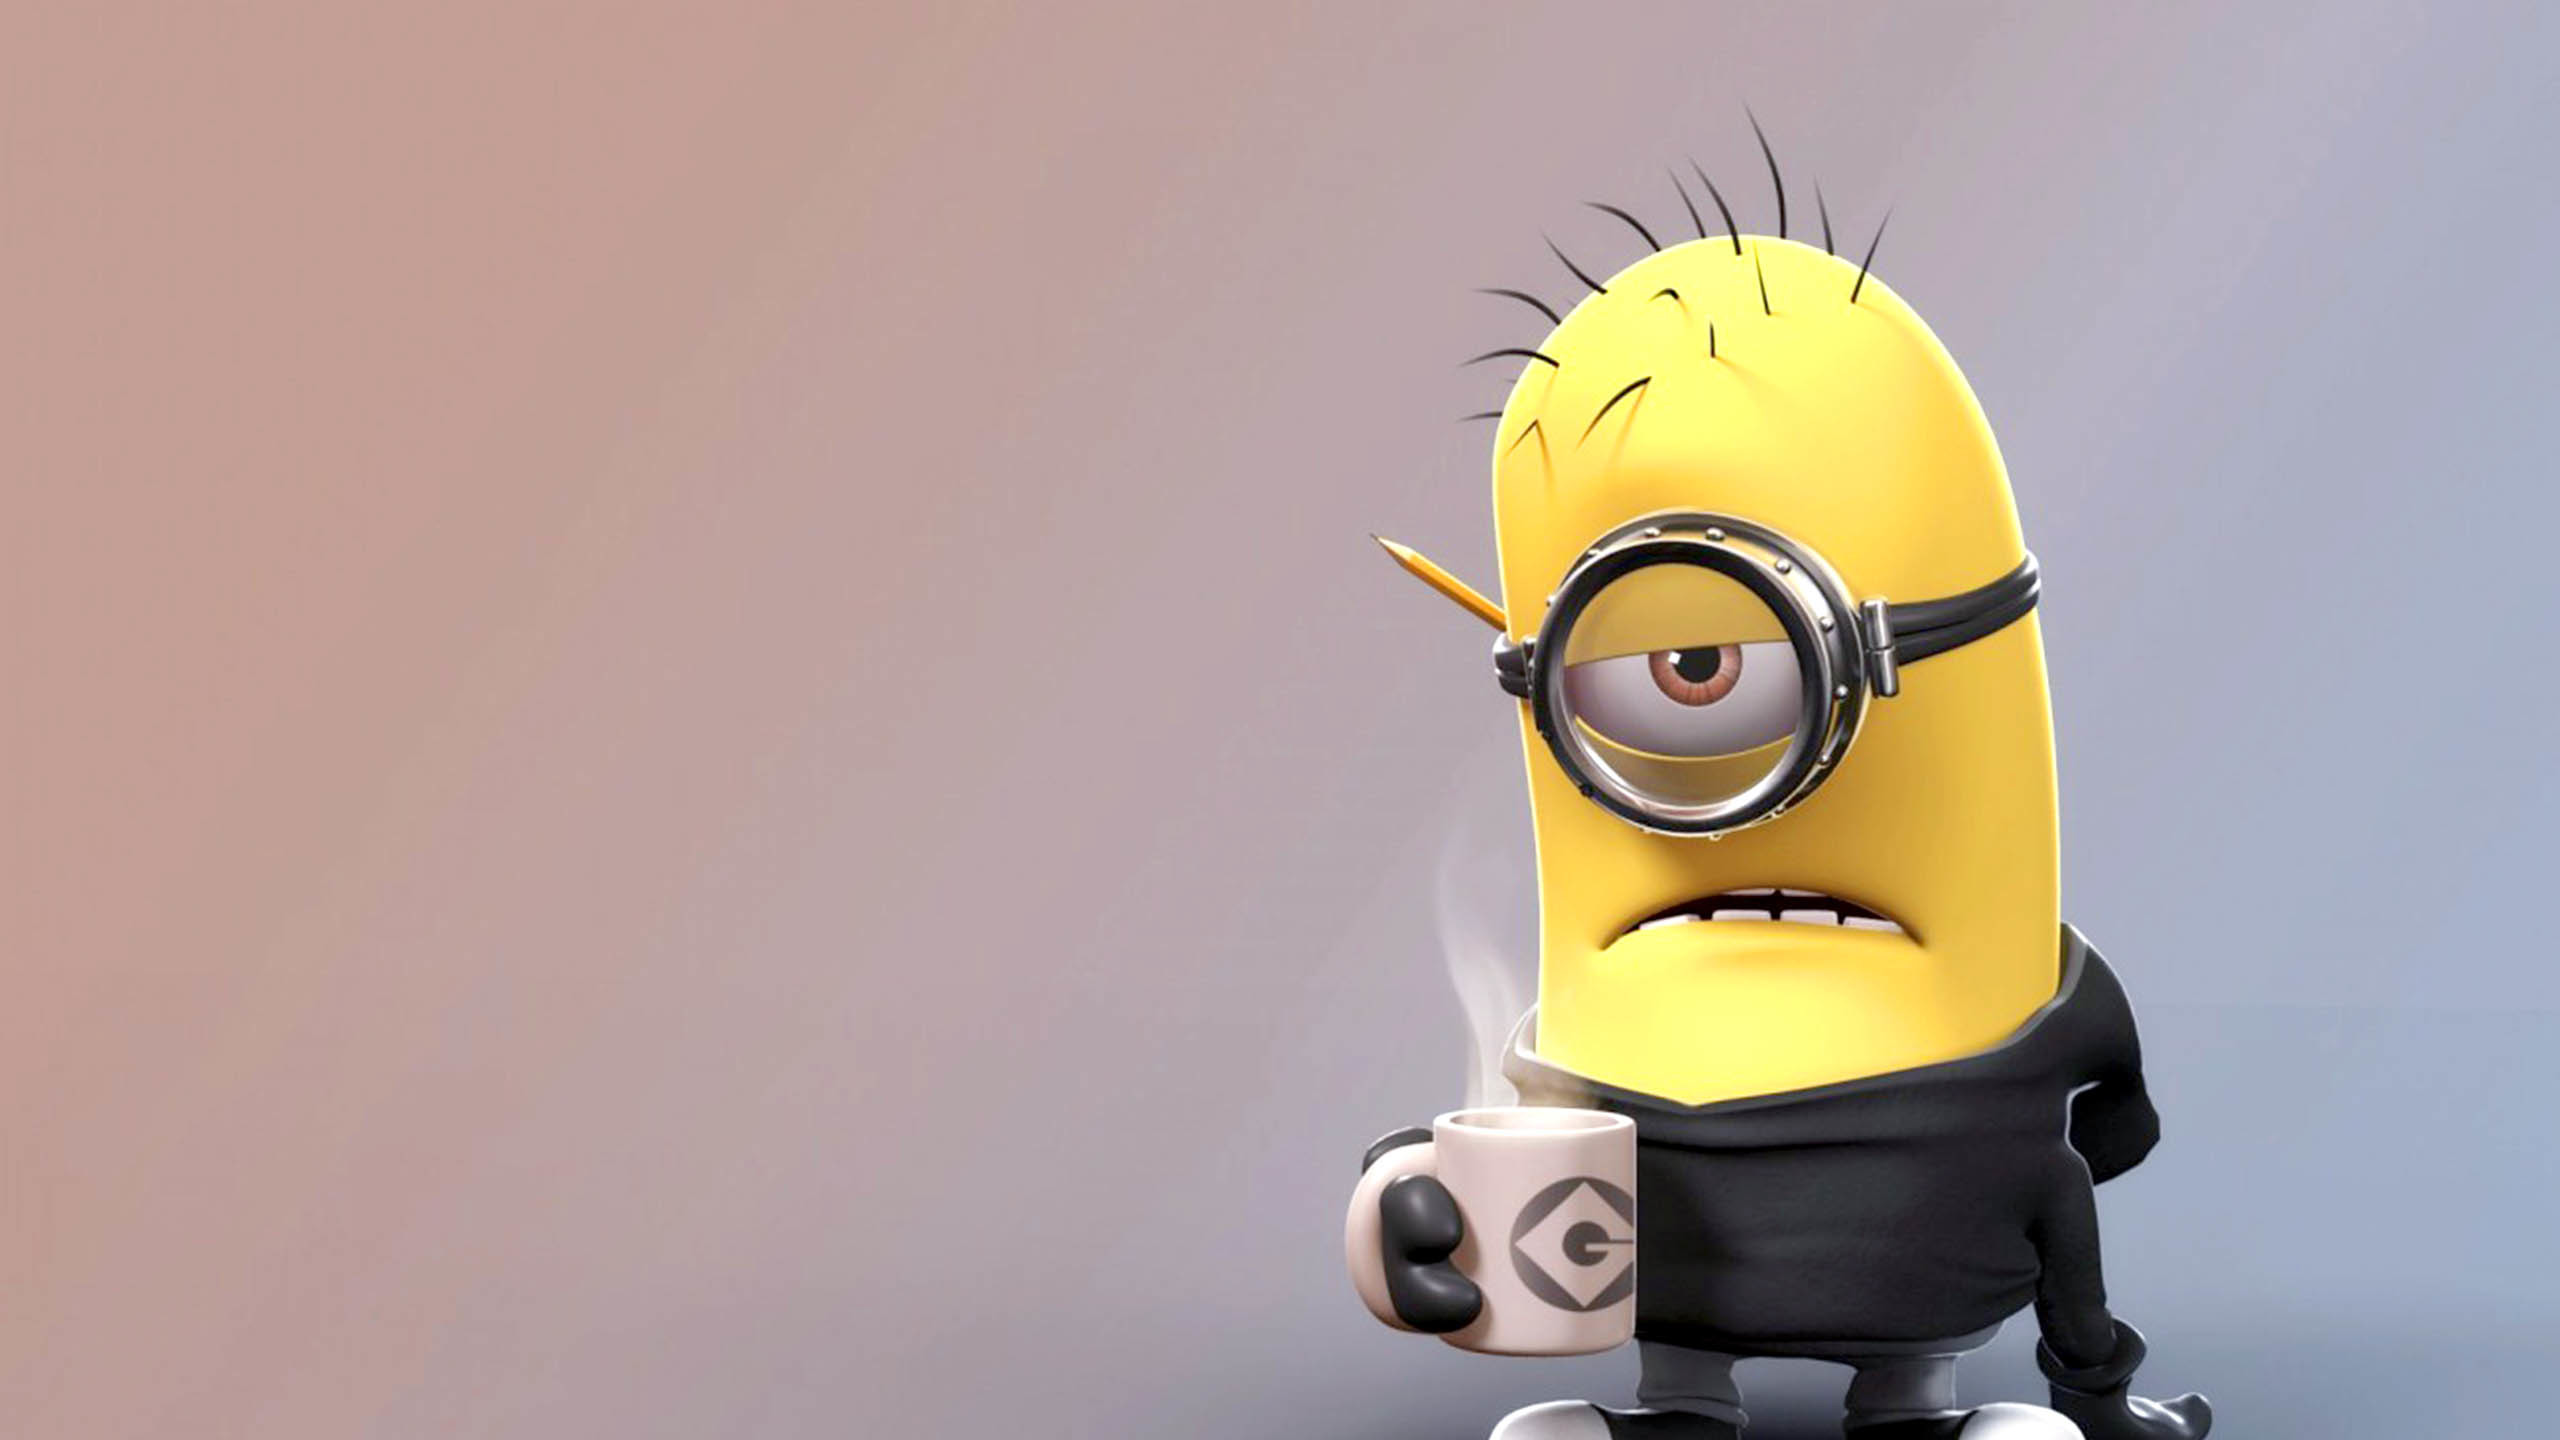 2560x1440 banana-minion-wallpaper-despicable-me-movie - http://